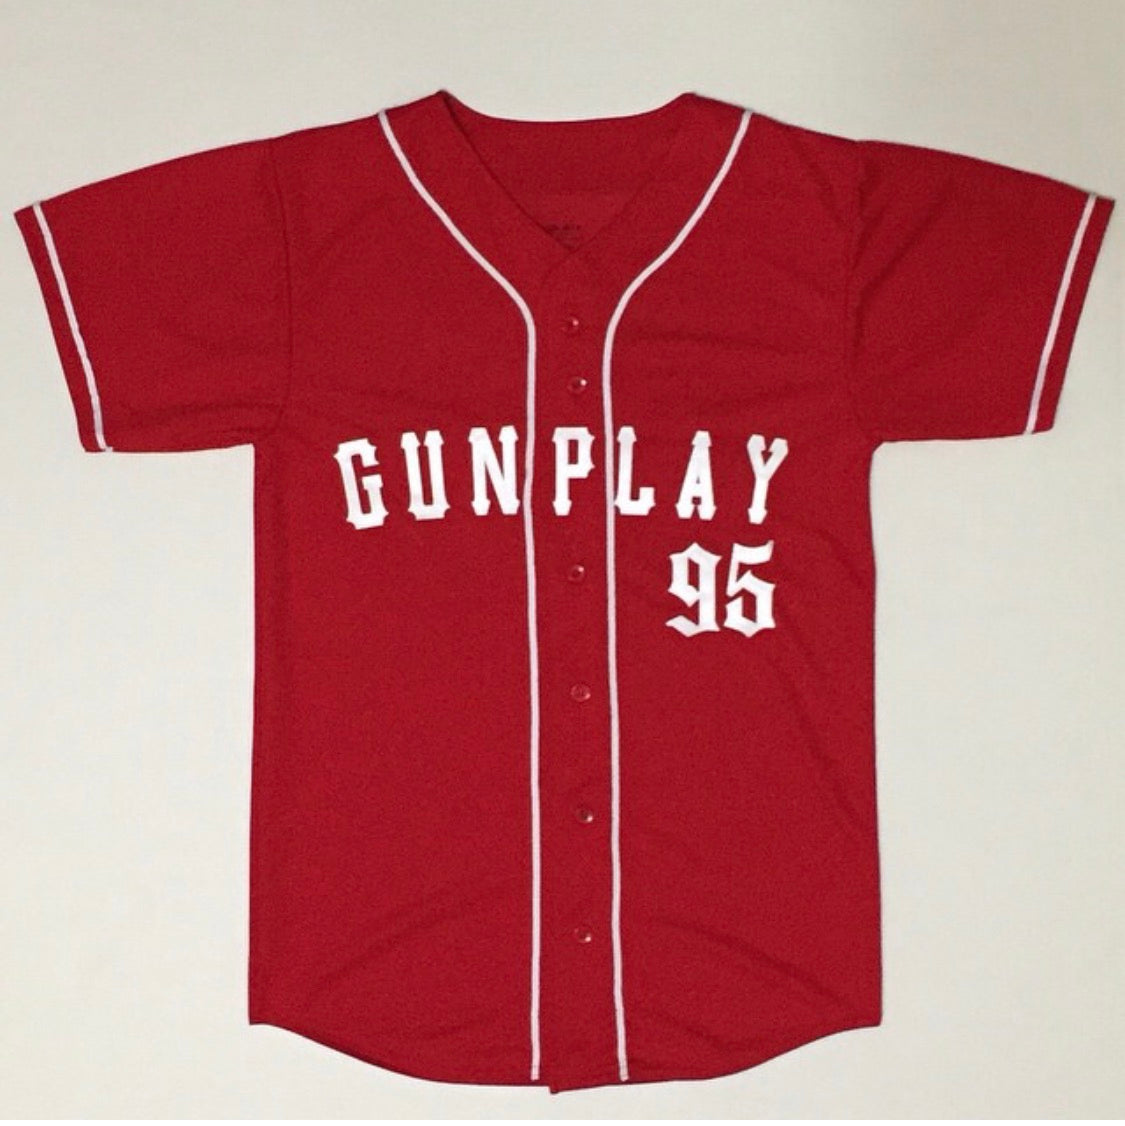 Original Gunplay Jersey - Red